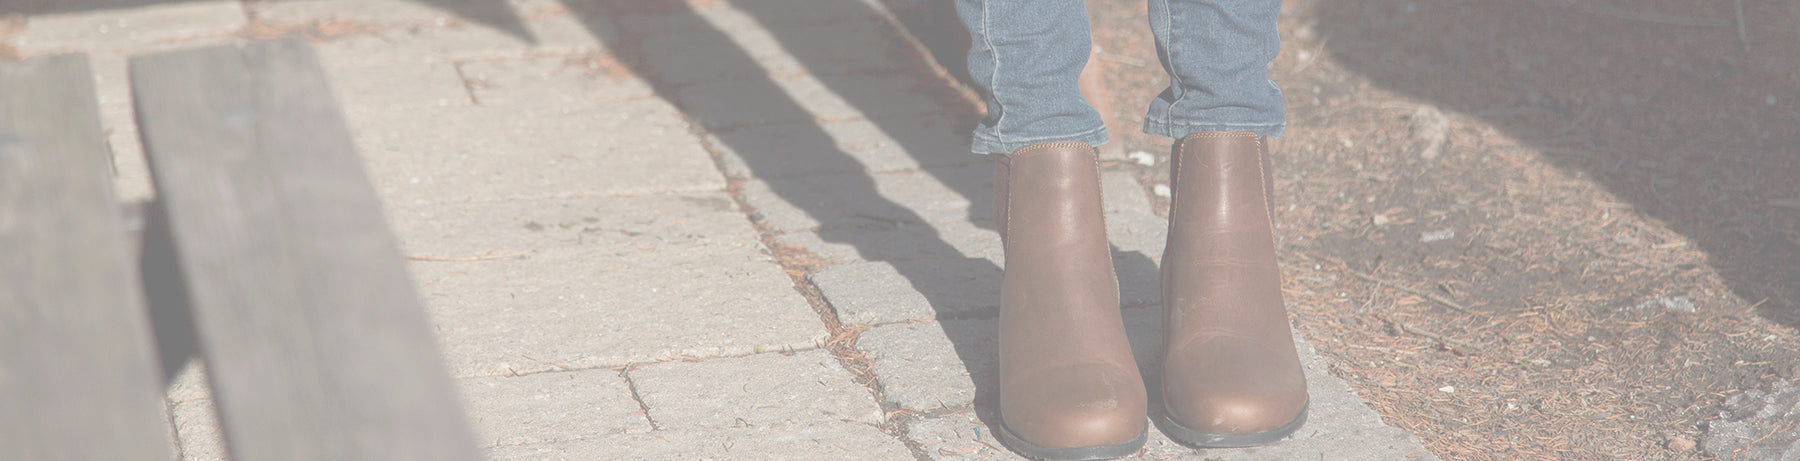 comfy moda women's boots for fall winter snow